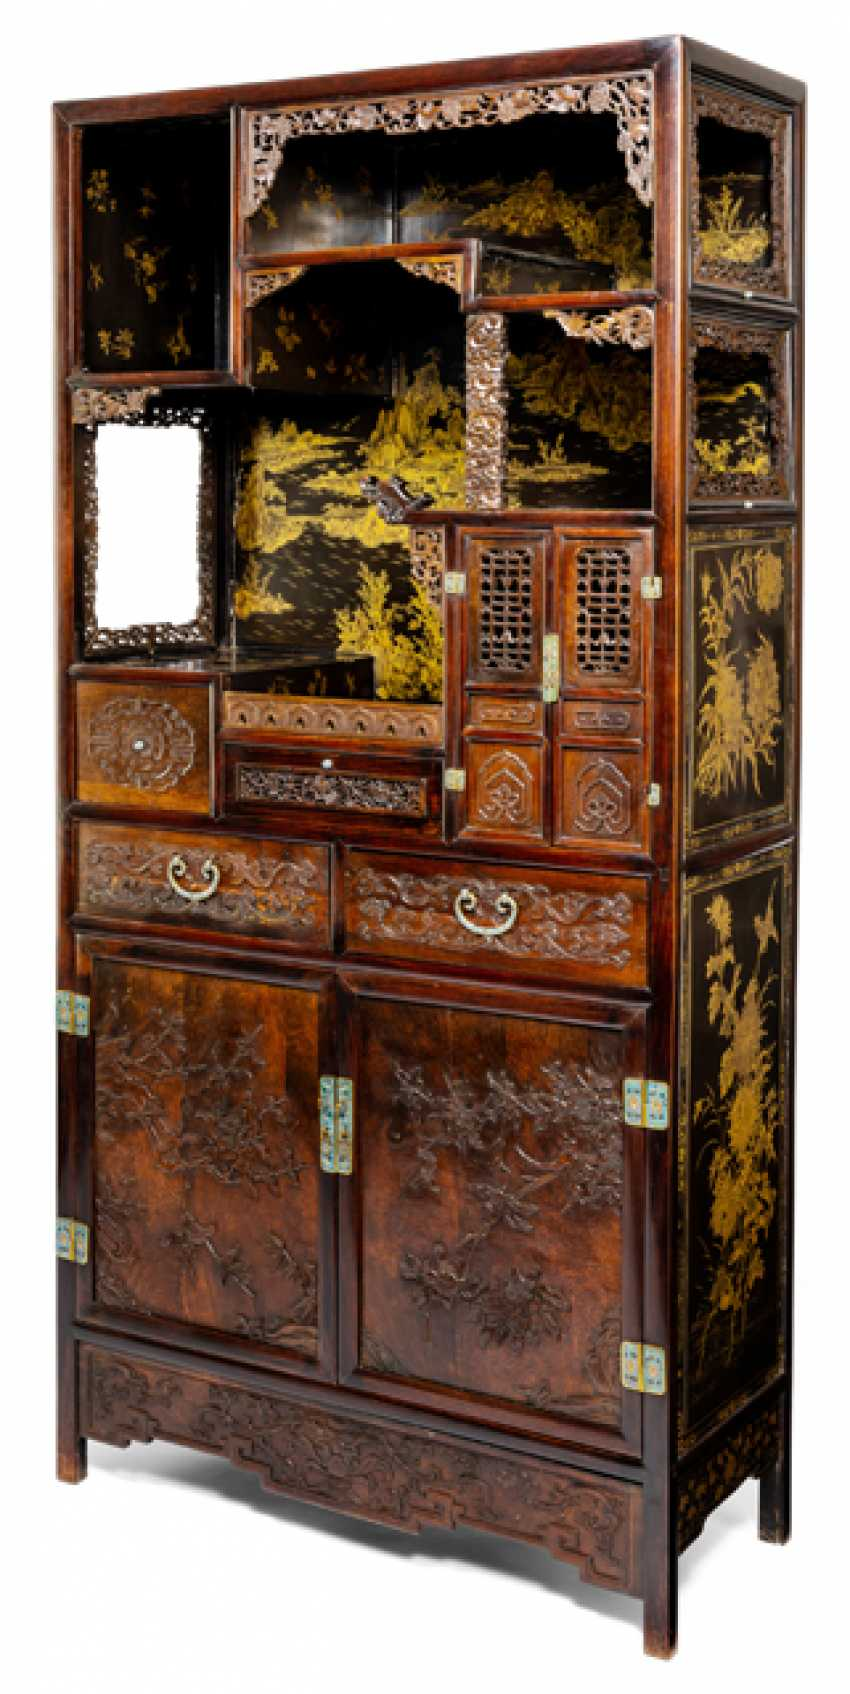 Some fine cabinets made of various Woods with Cloisonne fittings - photo 1